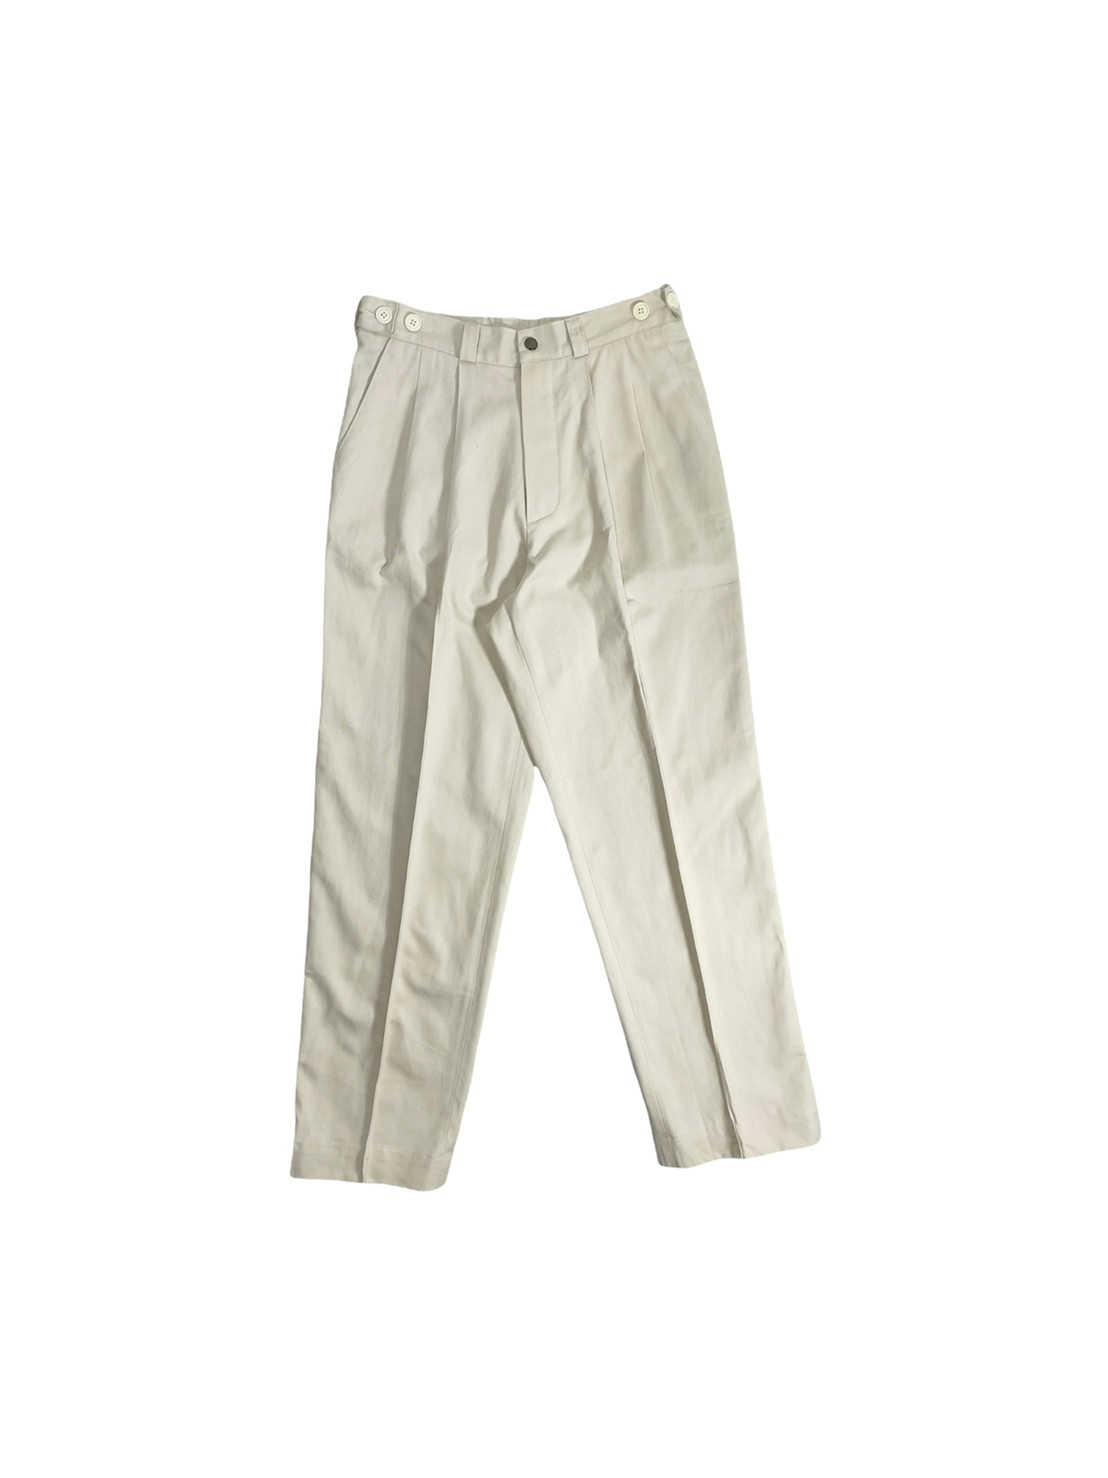 FRANK! Office Trousers (Sand)